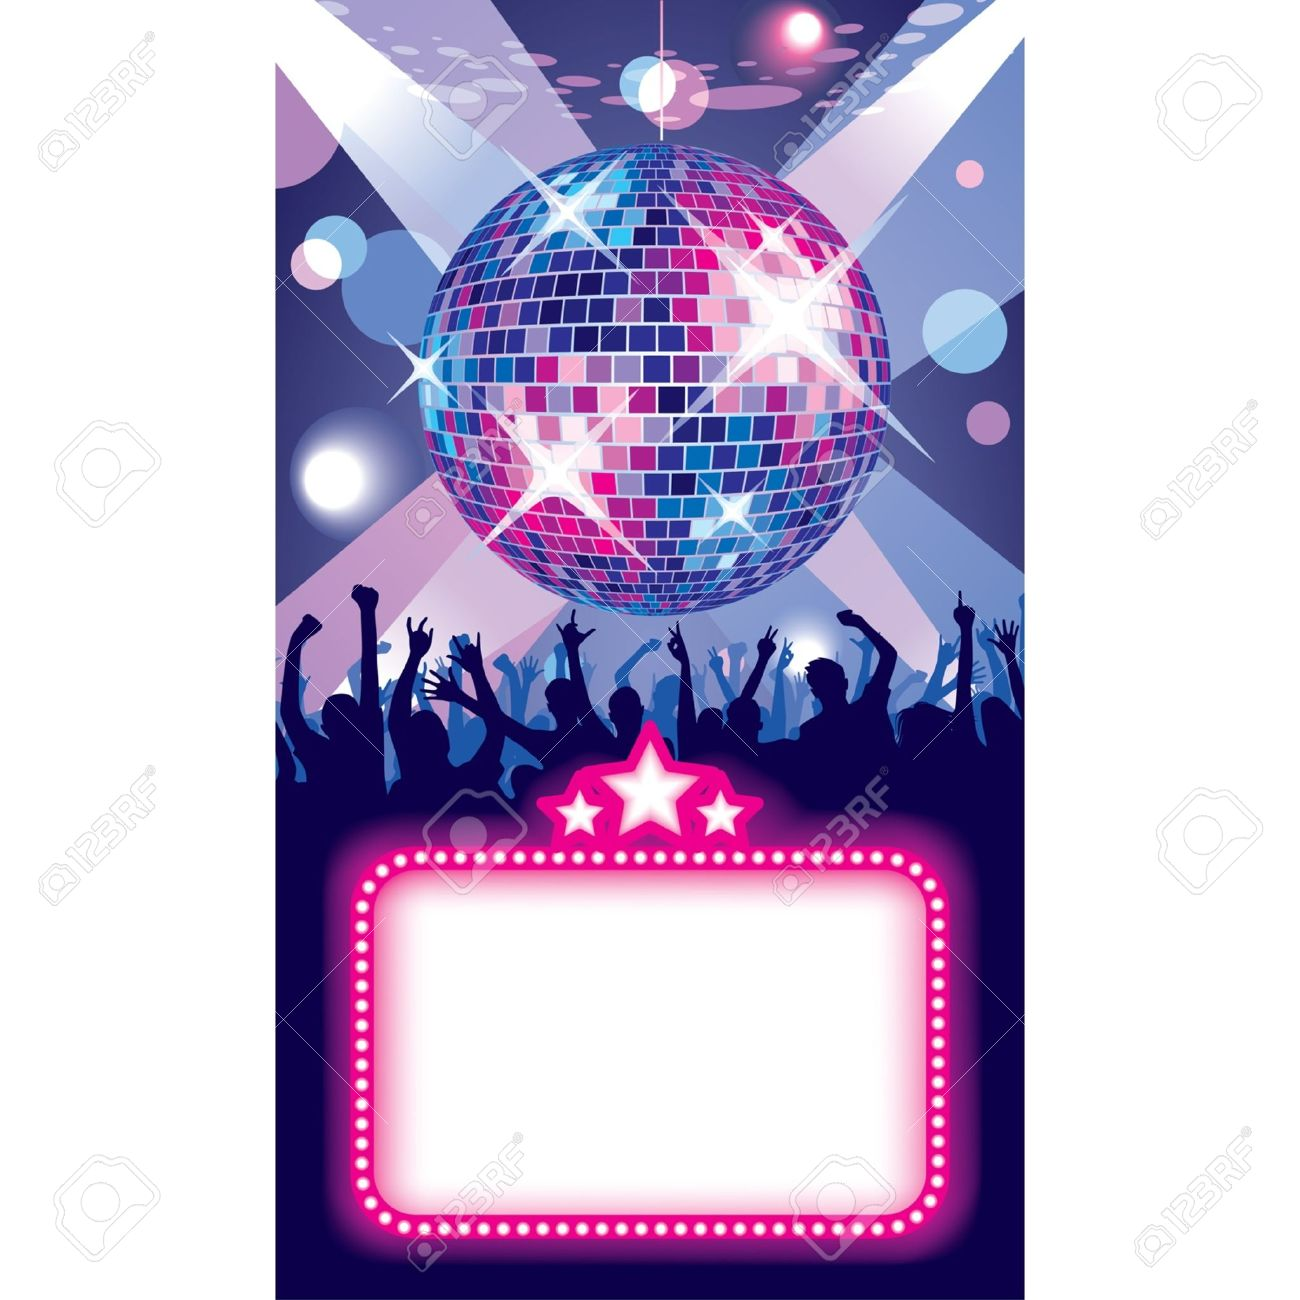 Vector image of disco banner with a party in the night club - 16415429